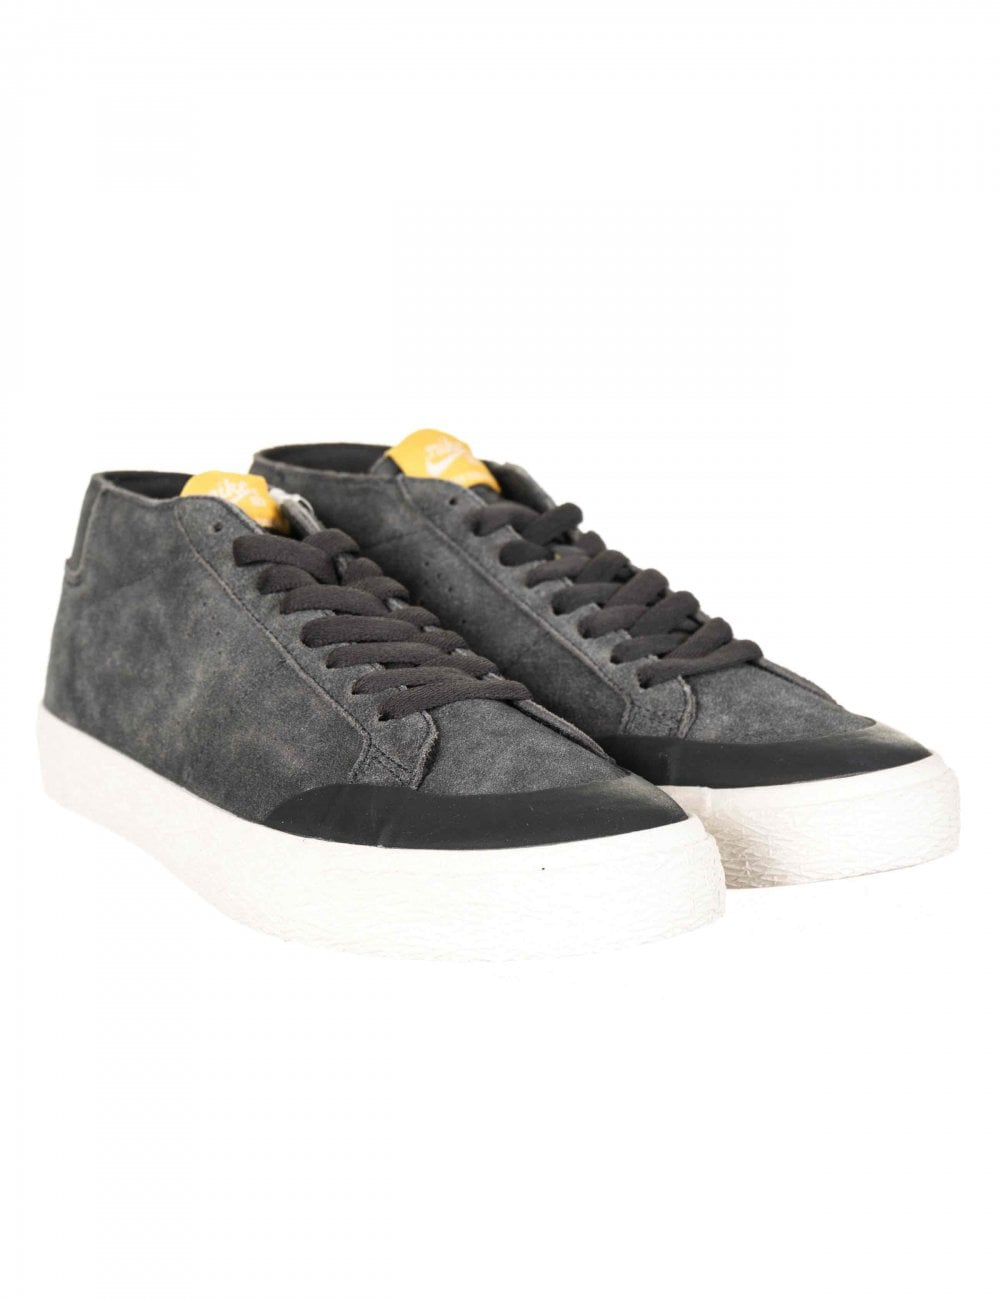 premium selection ede36 d7df6 Zoom Blazer Chukka XT Trainers - Anthracite (Lance Mountain Pack)